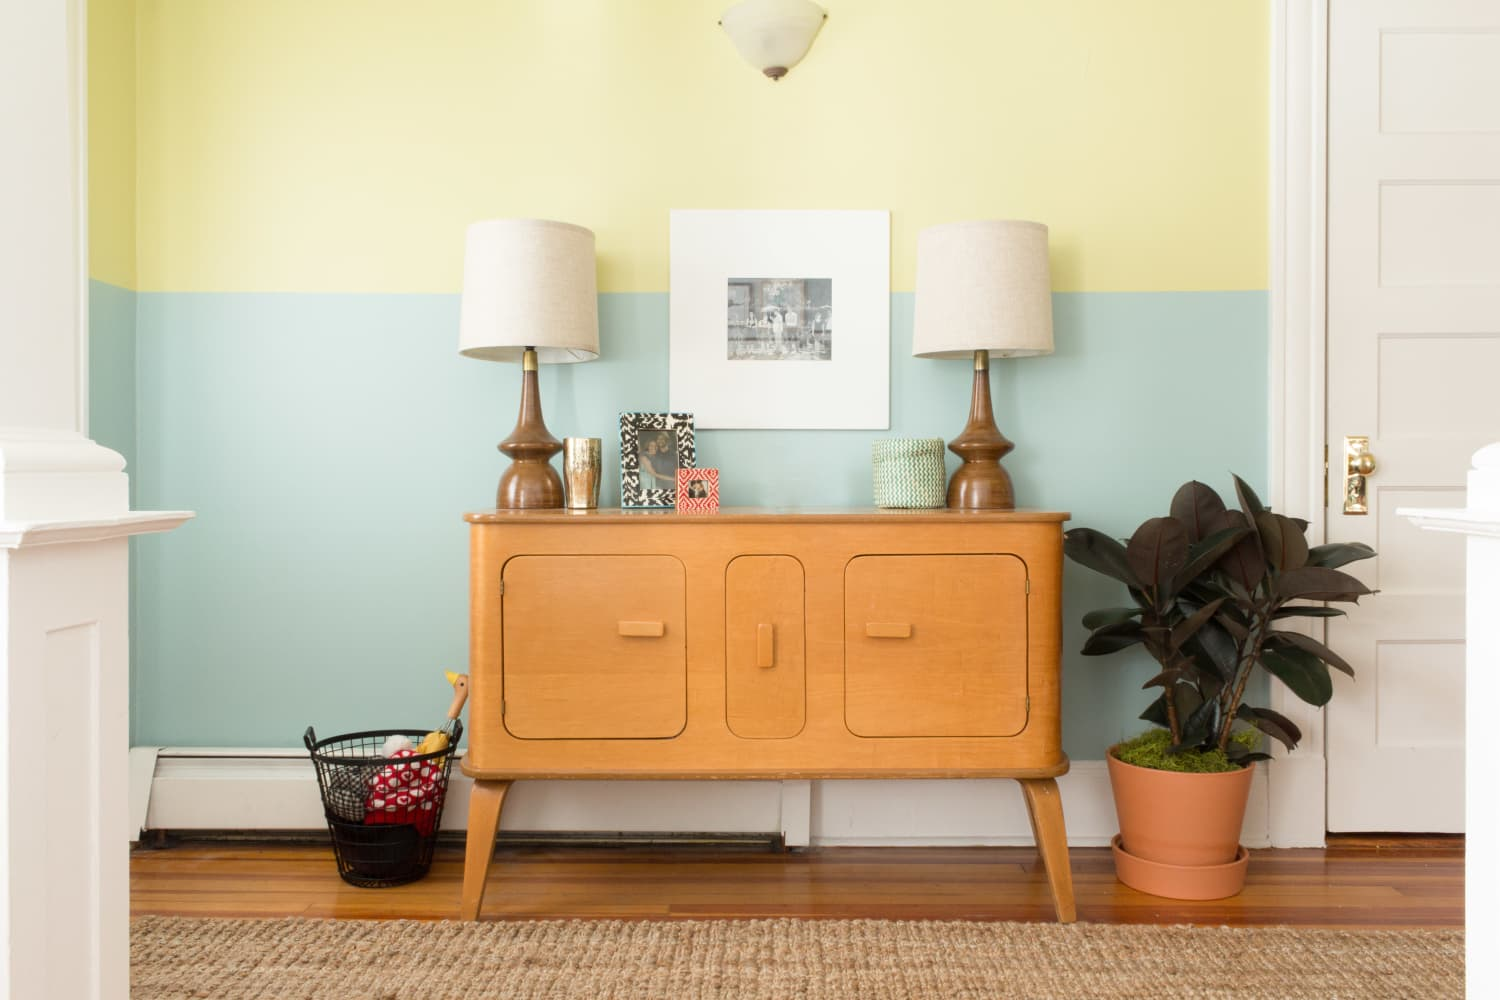 20 Things You Don't Need in Your Entryway